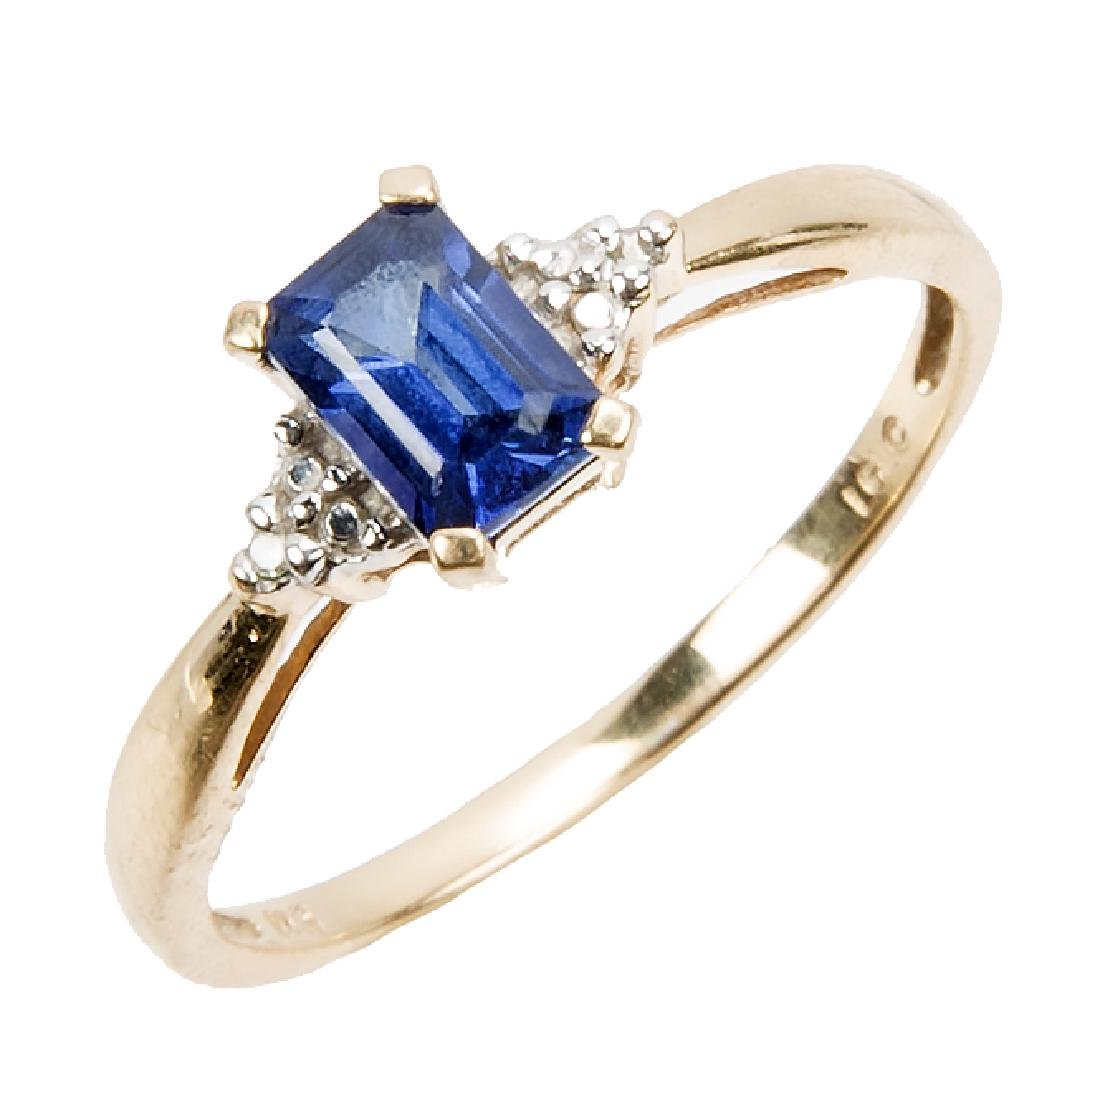 LADIES 10K YELLOW GOLD DIAMOND SAPPHIRE RING